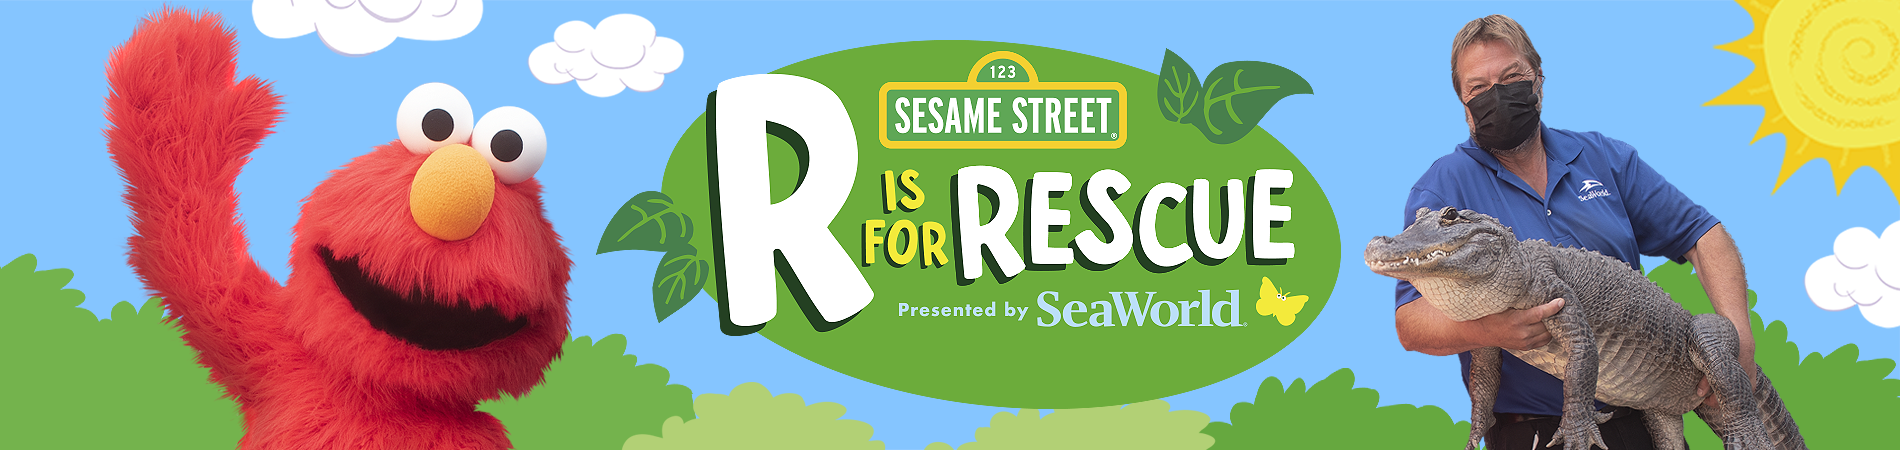 R is for Rescue presentation